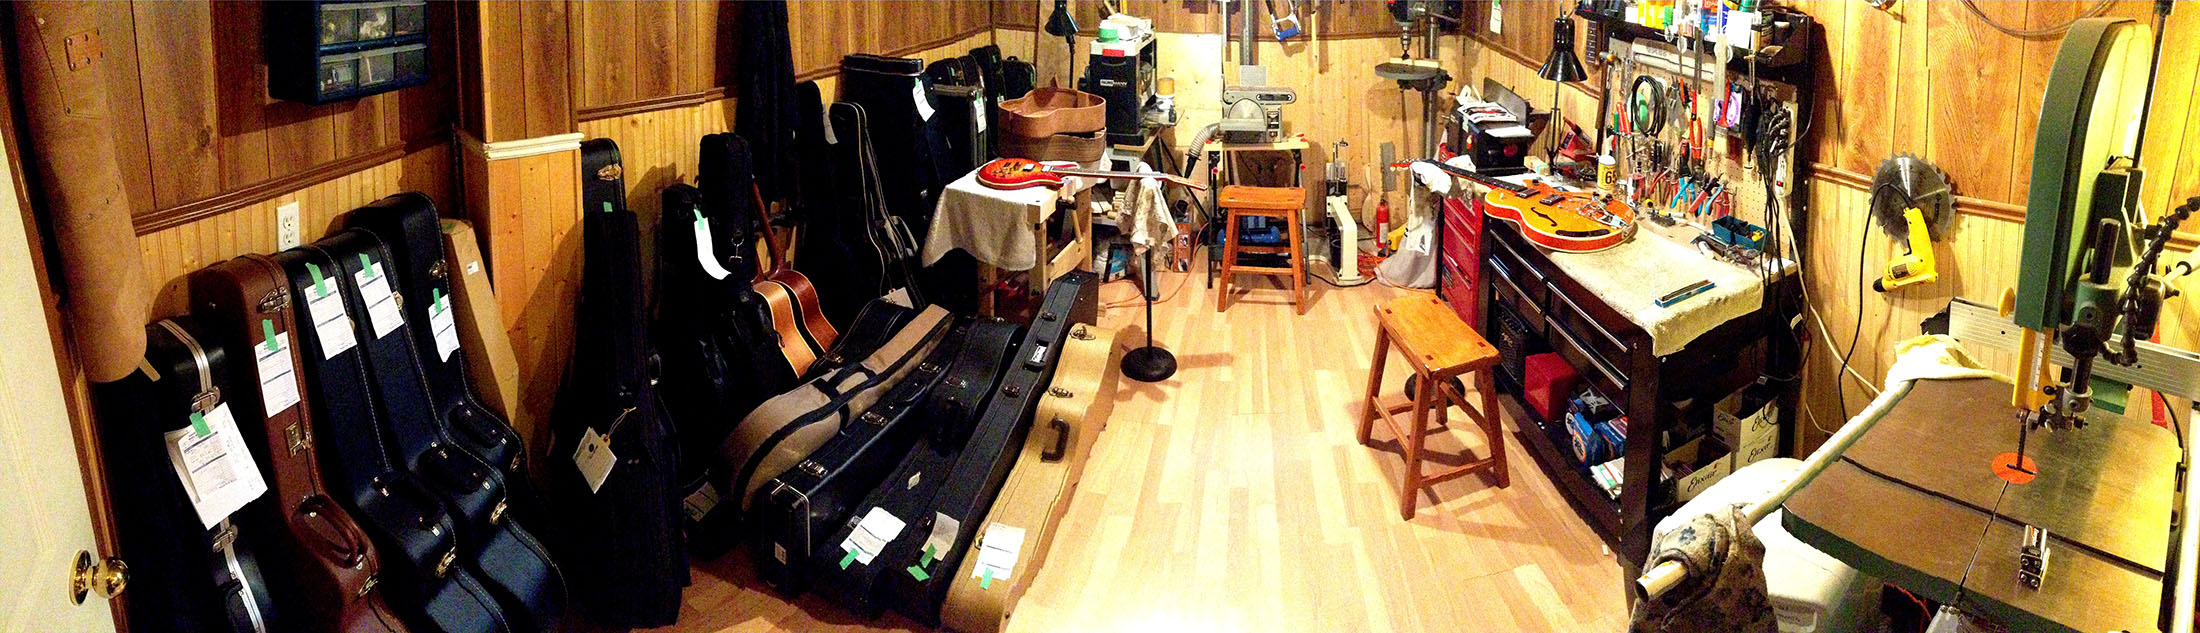 Ottawa guitar repair bench 2